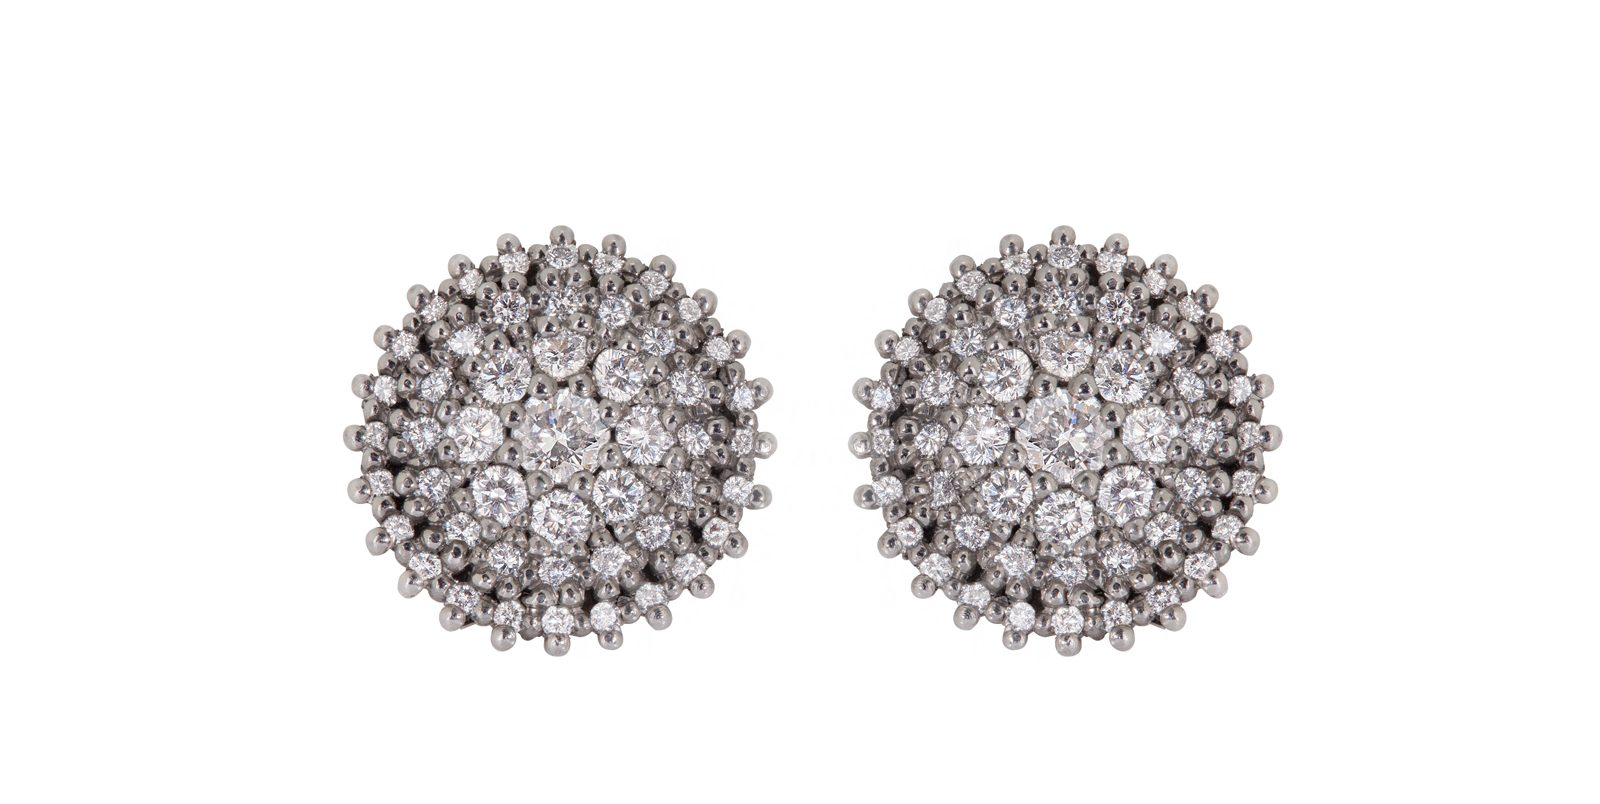 Sophie's Graduated Diamond Stud Earrings